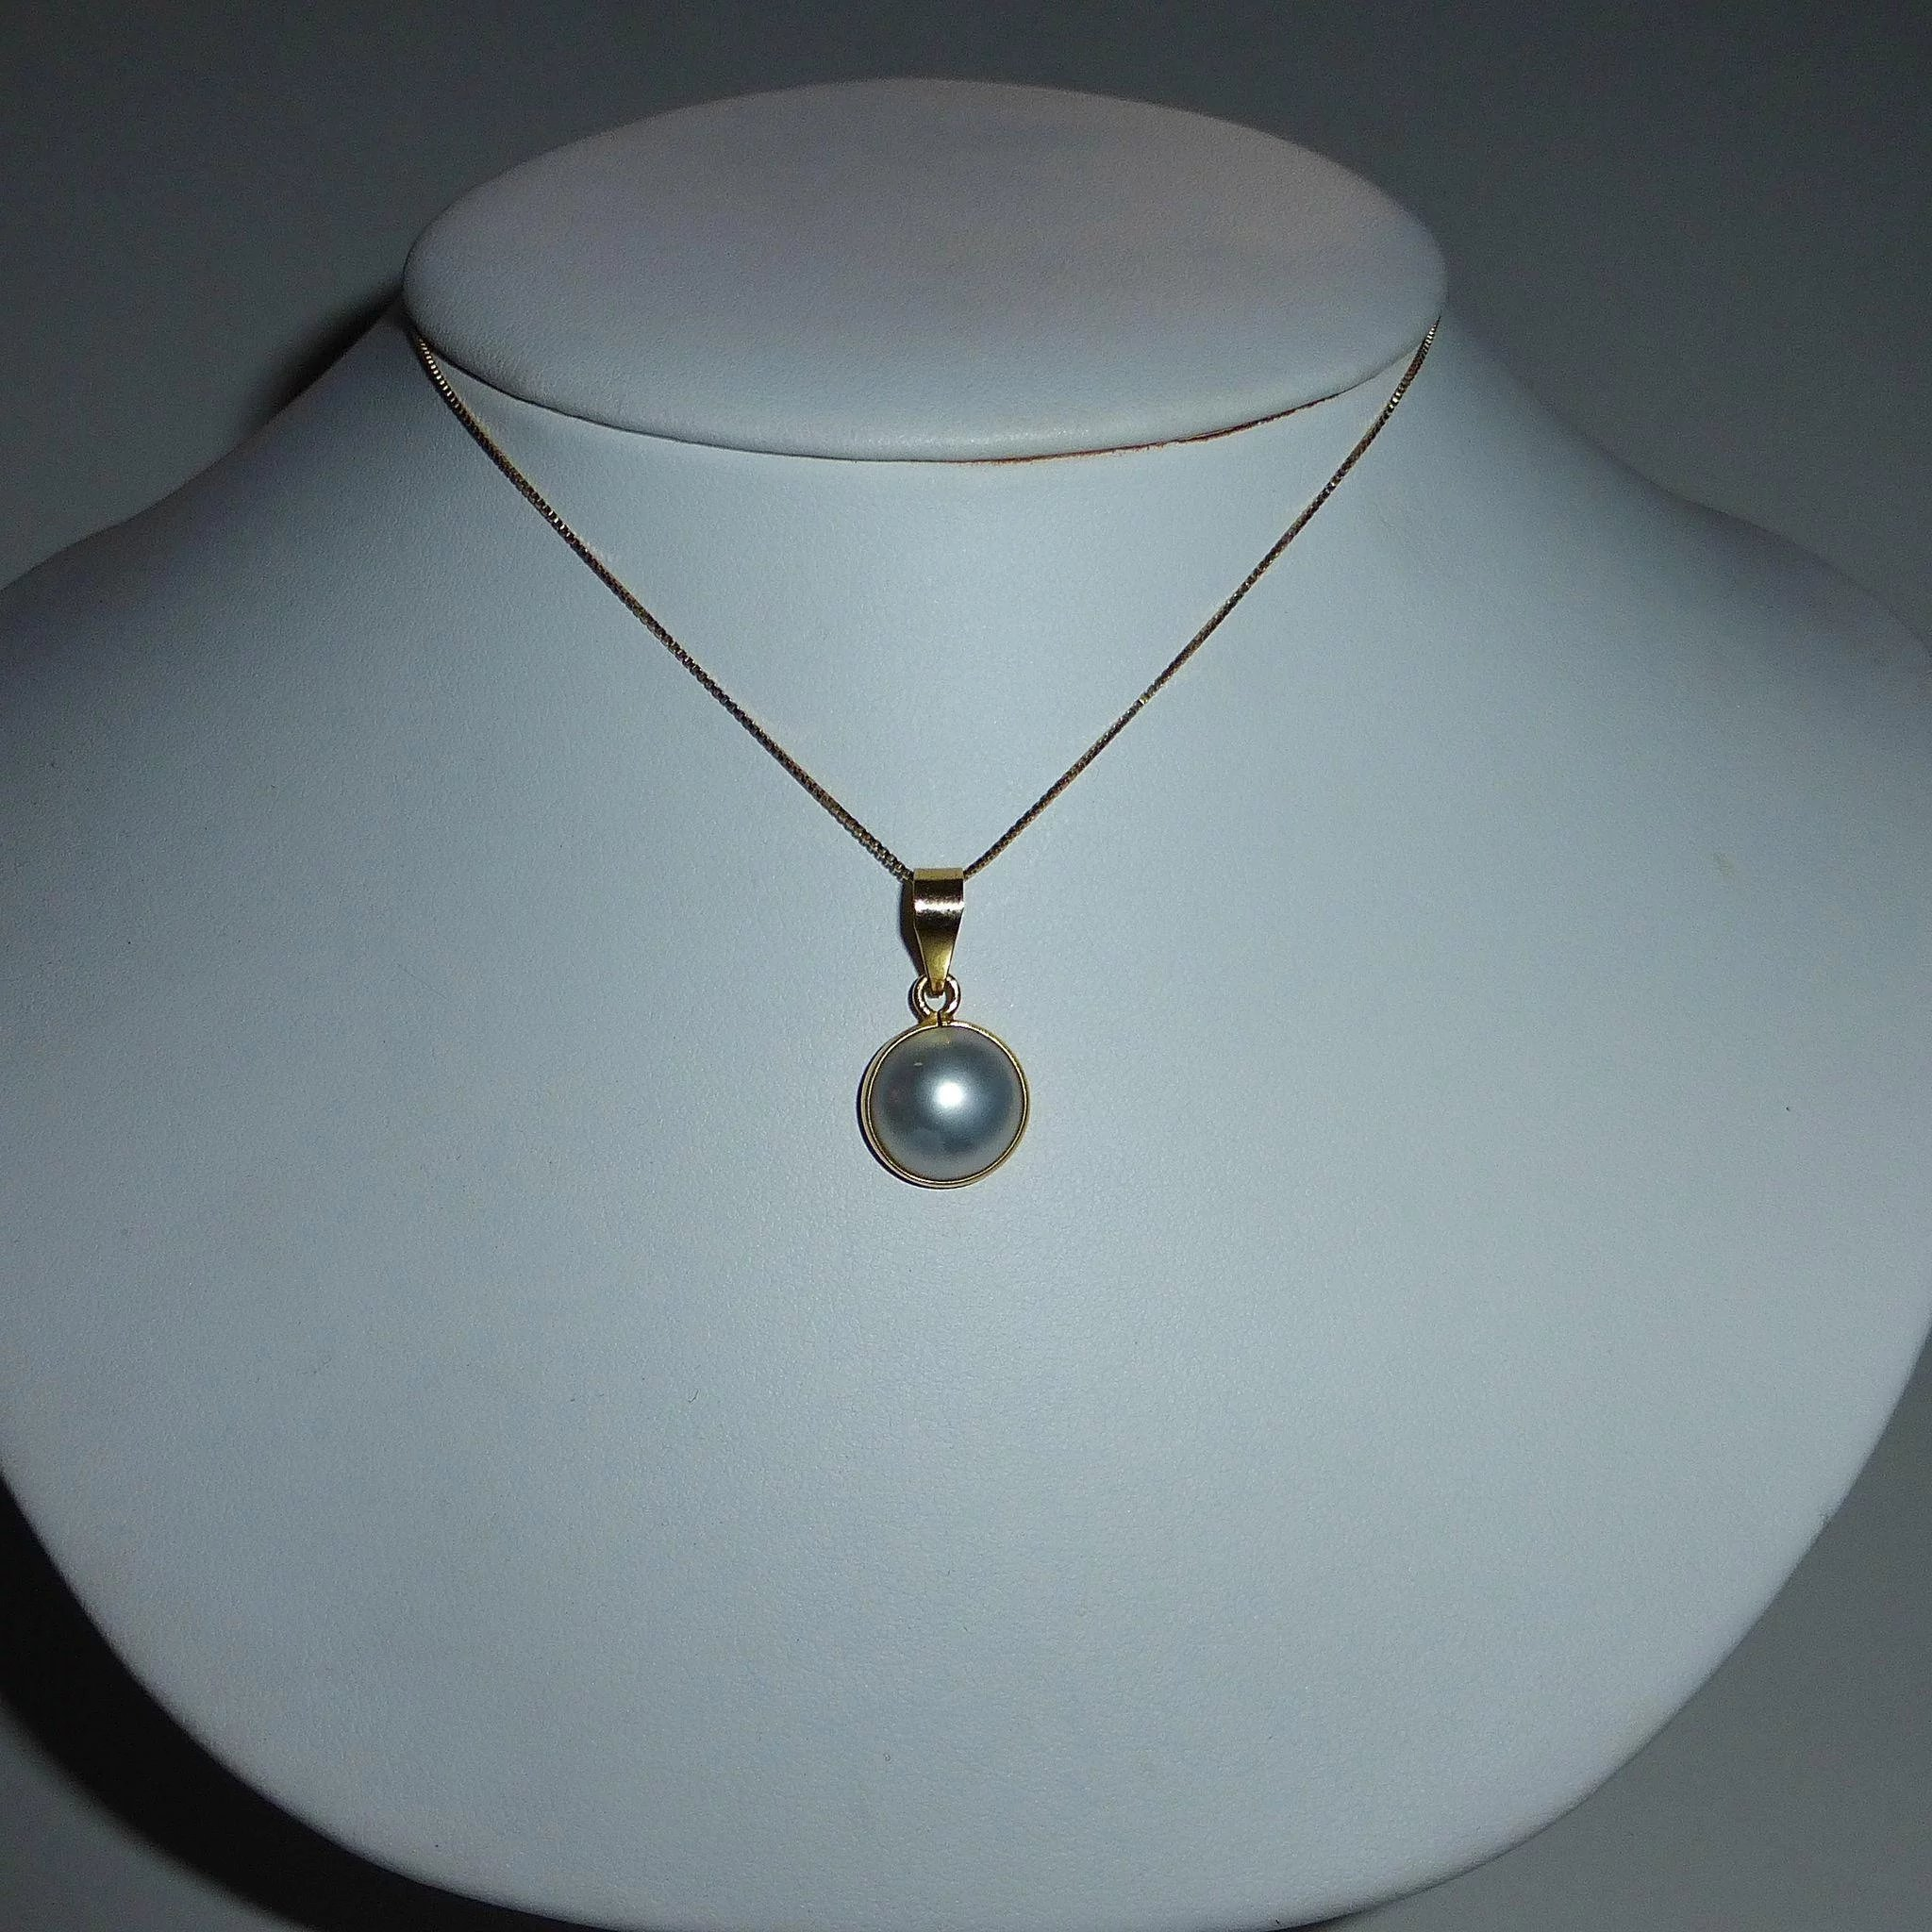 fine necklaces essential bradby shop single long simple claudia crop pendant pearl cultured handmade